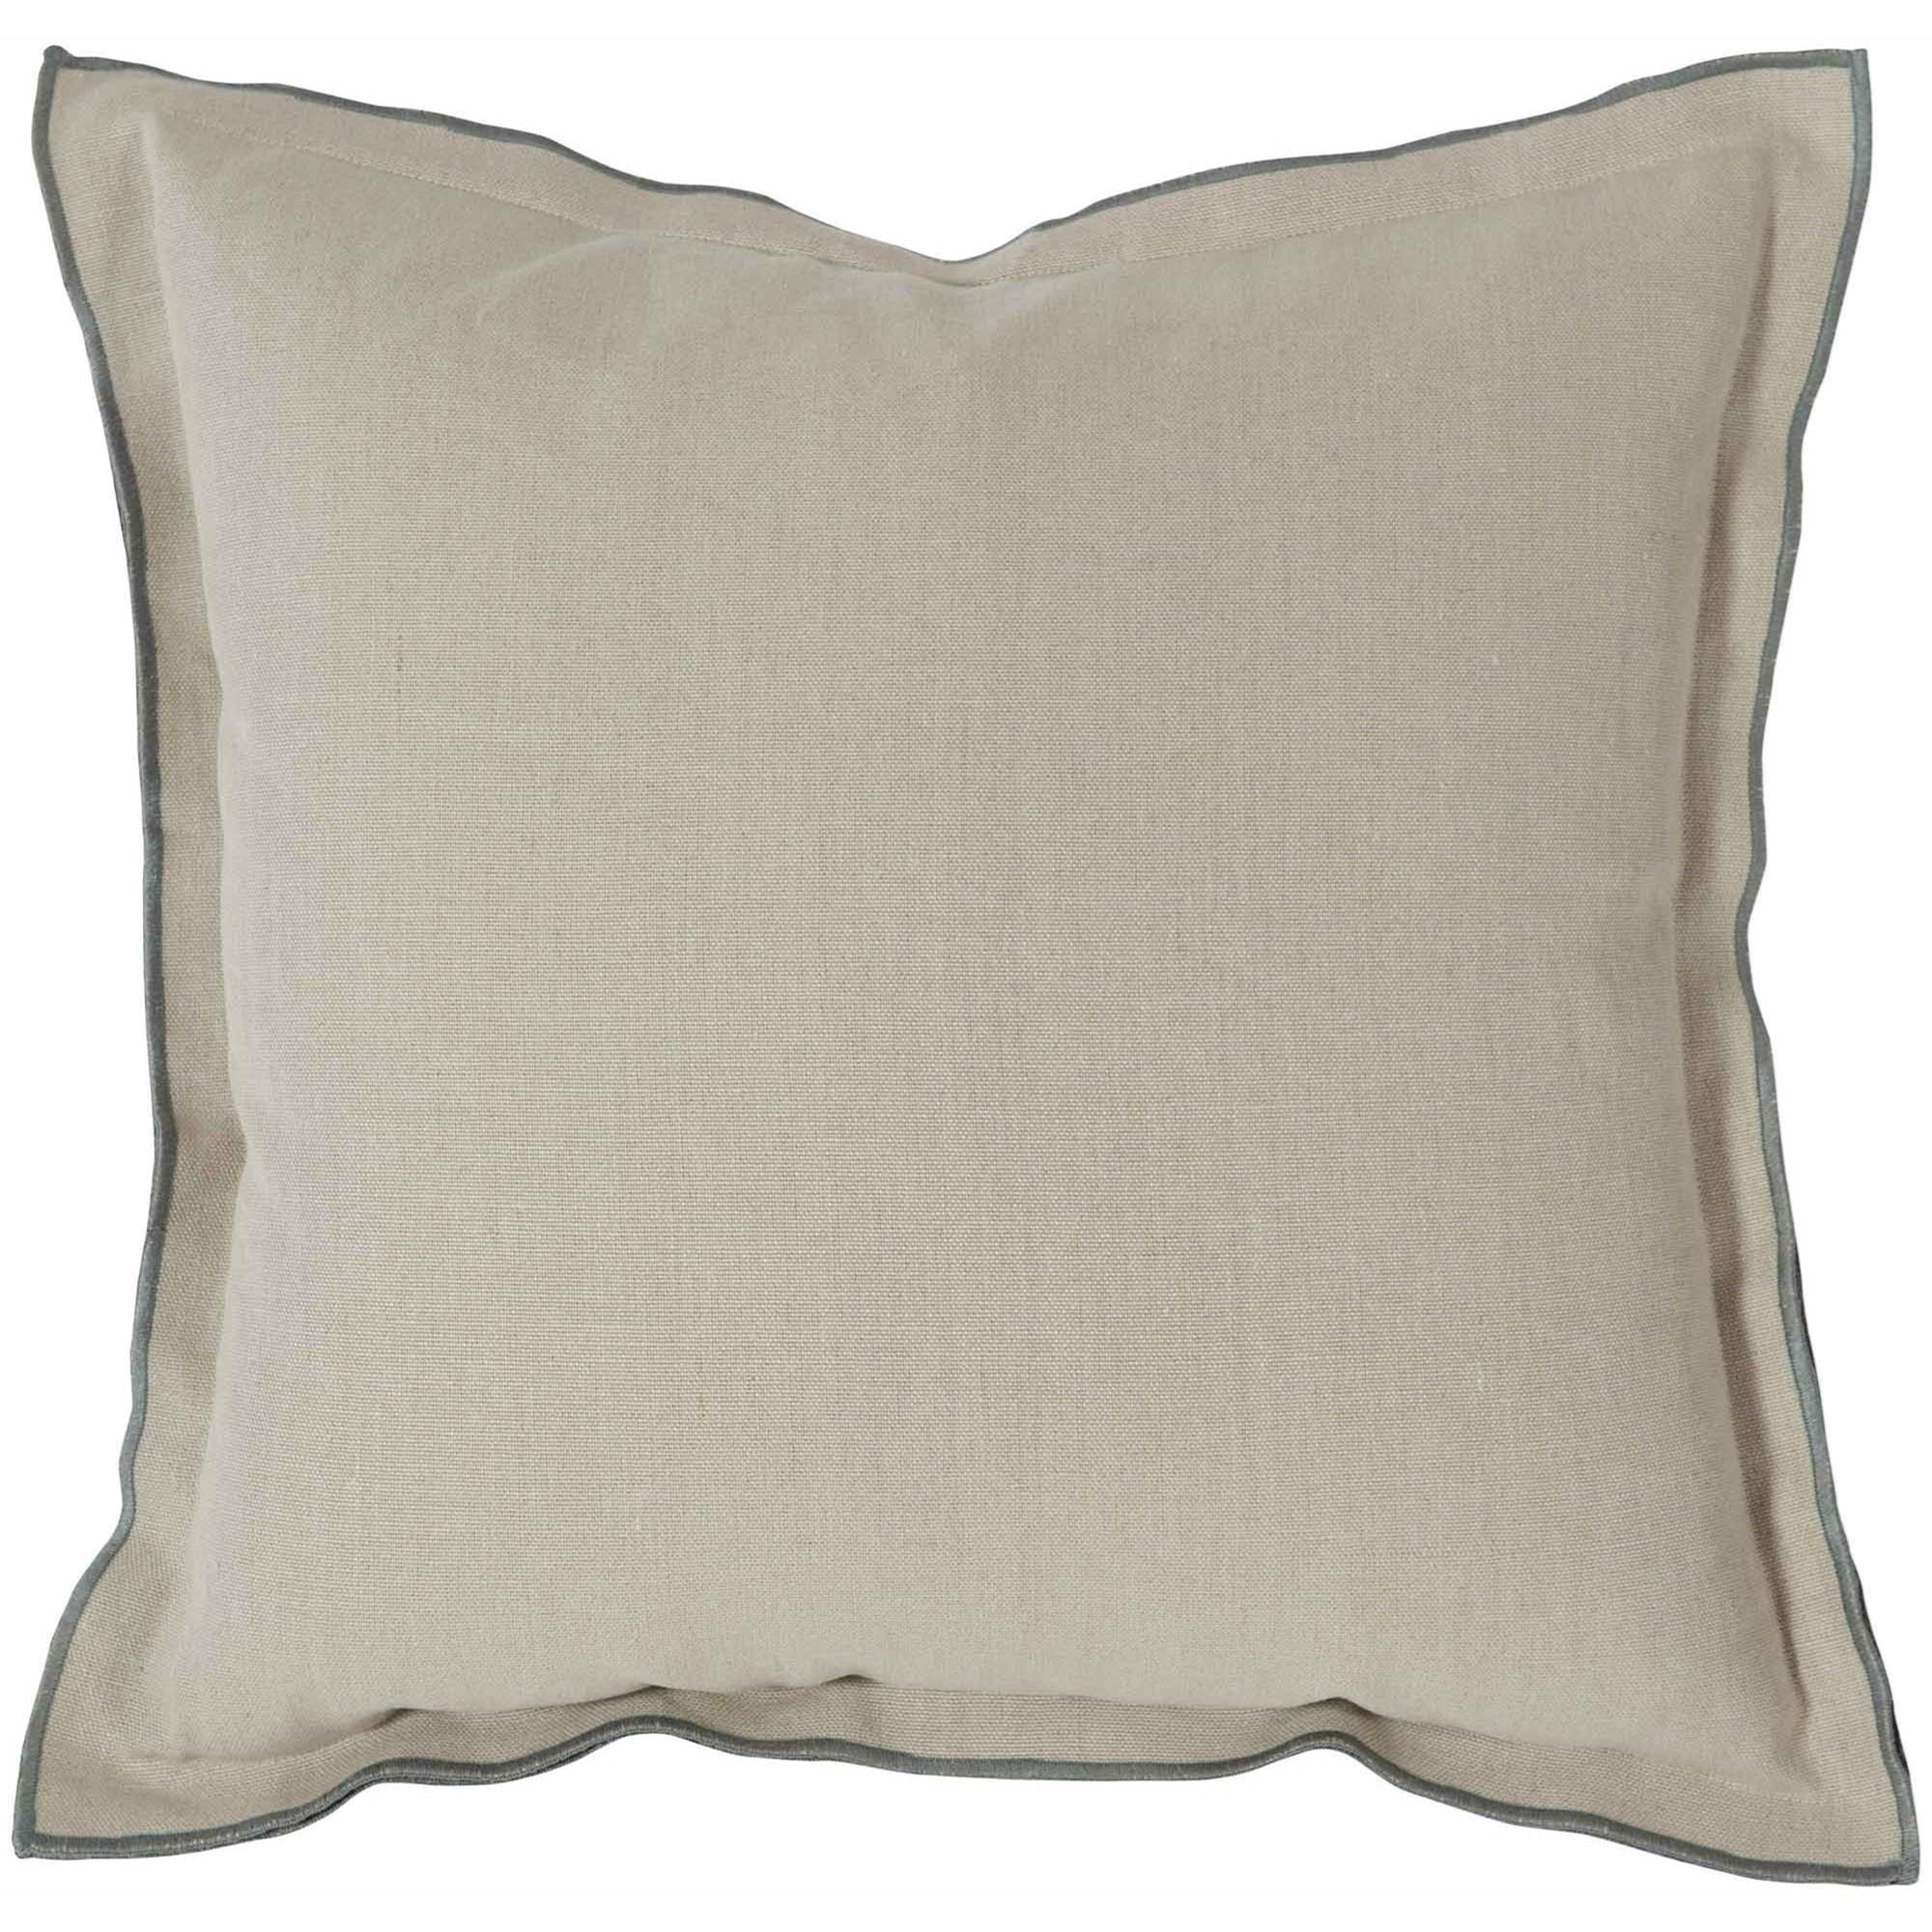 "Luxe Pillows Contrast Flange (22""x22"") by Bernhardt at Malouf Furniture Co."